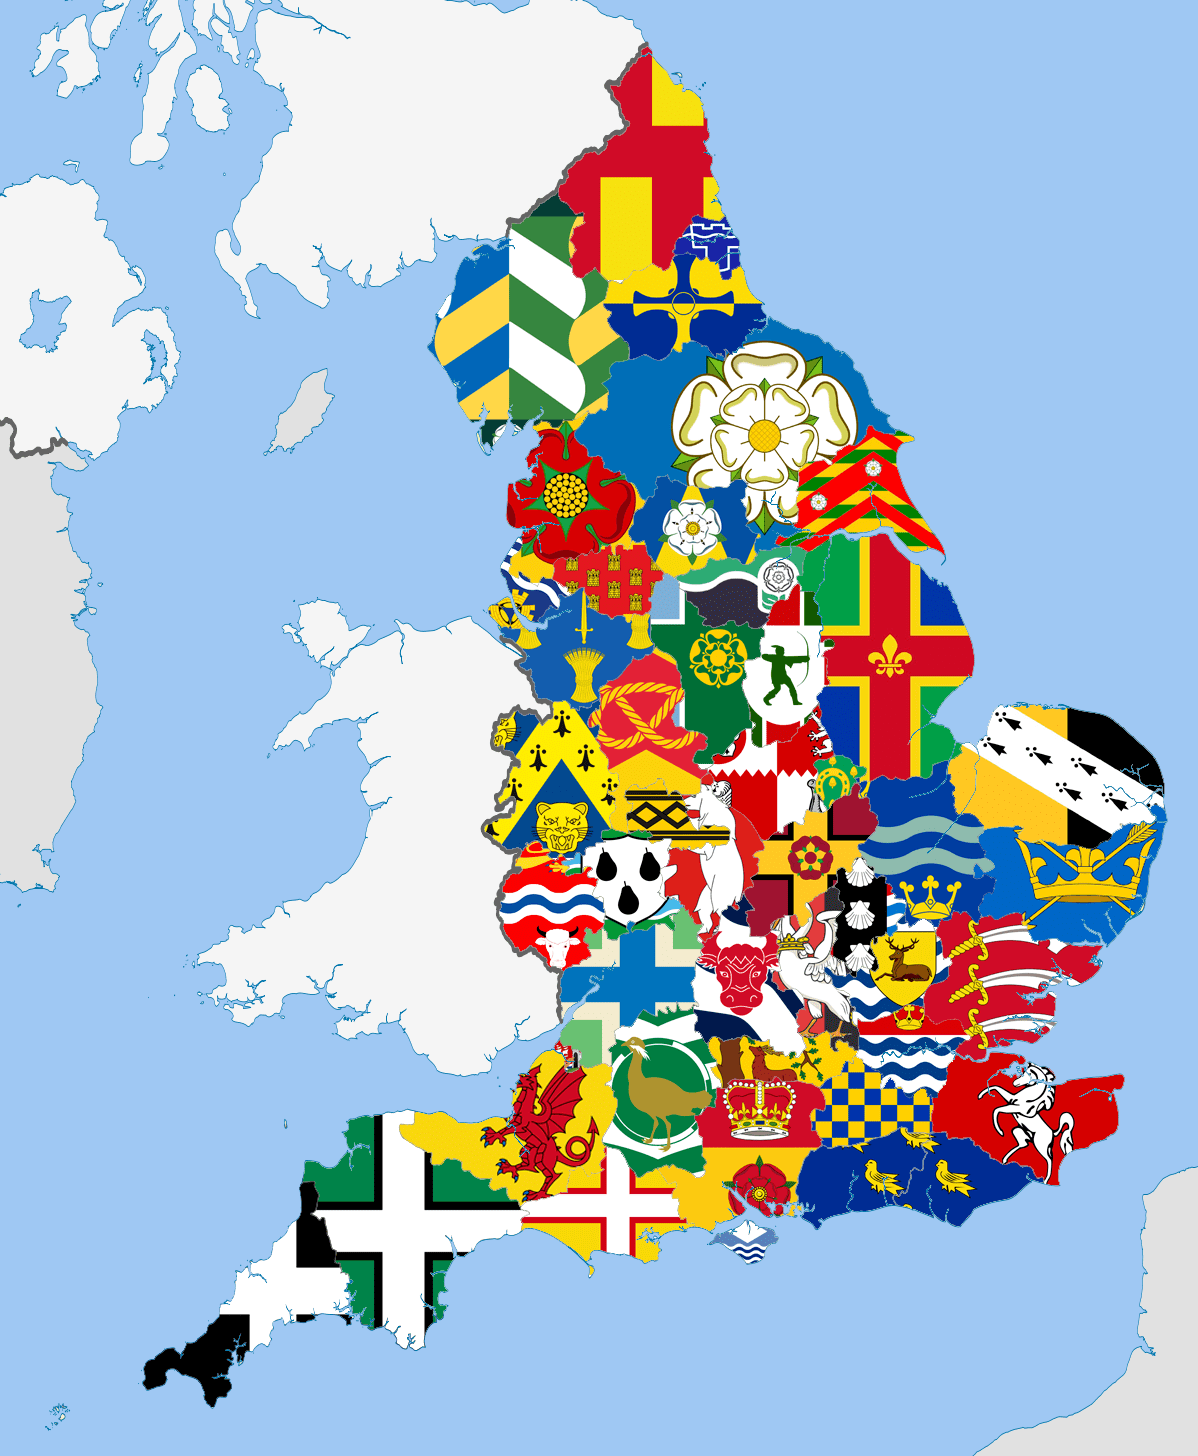 A Map Of The English Counties And Their Flags Vexillology